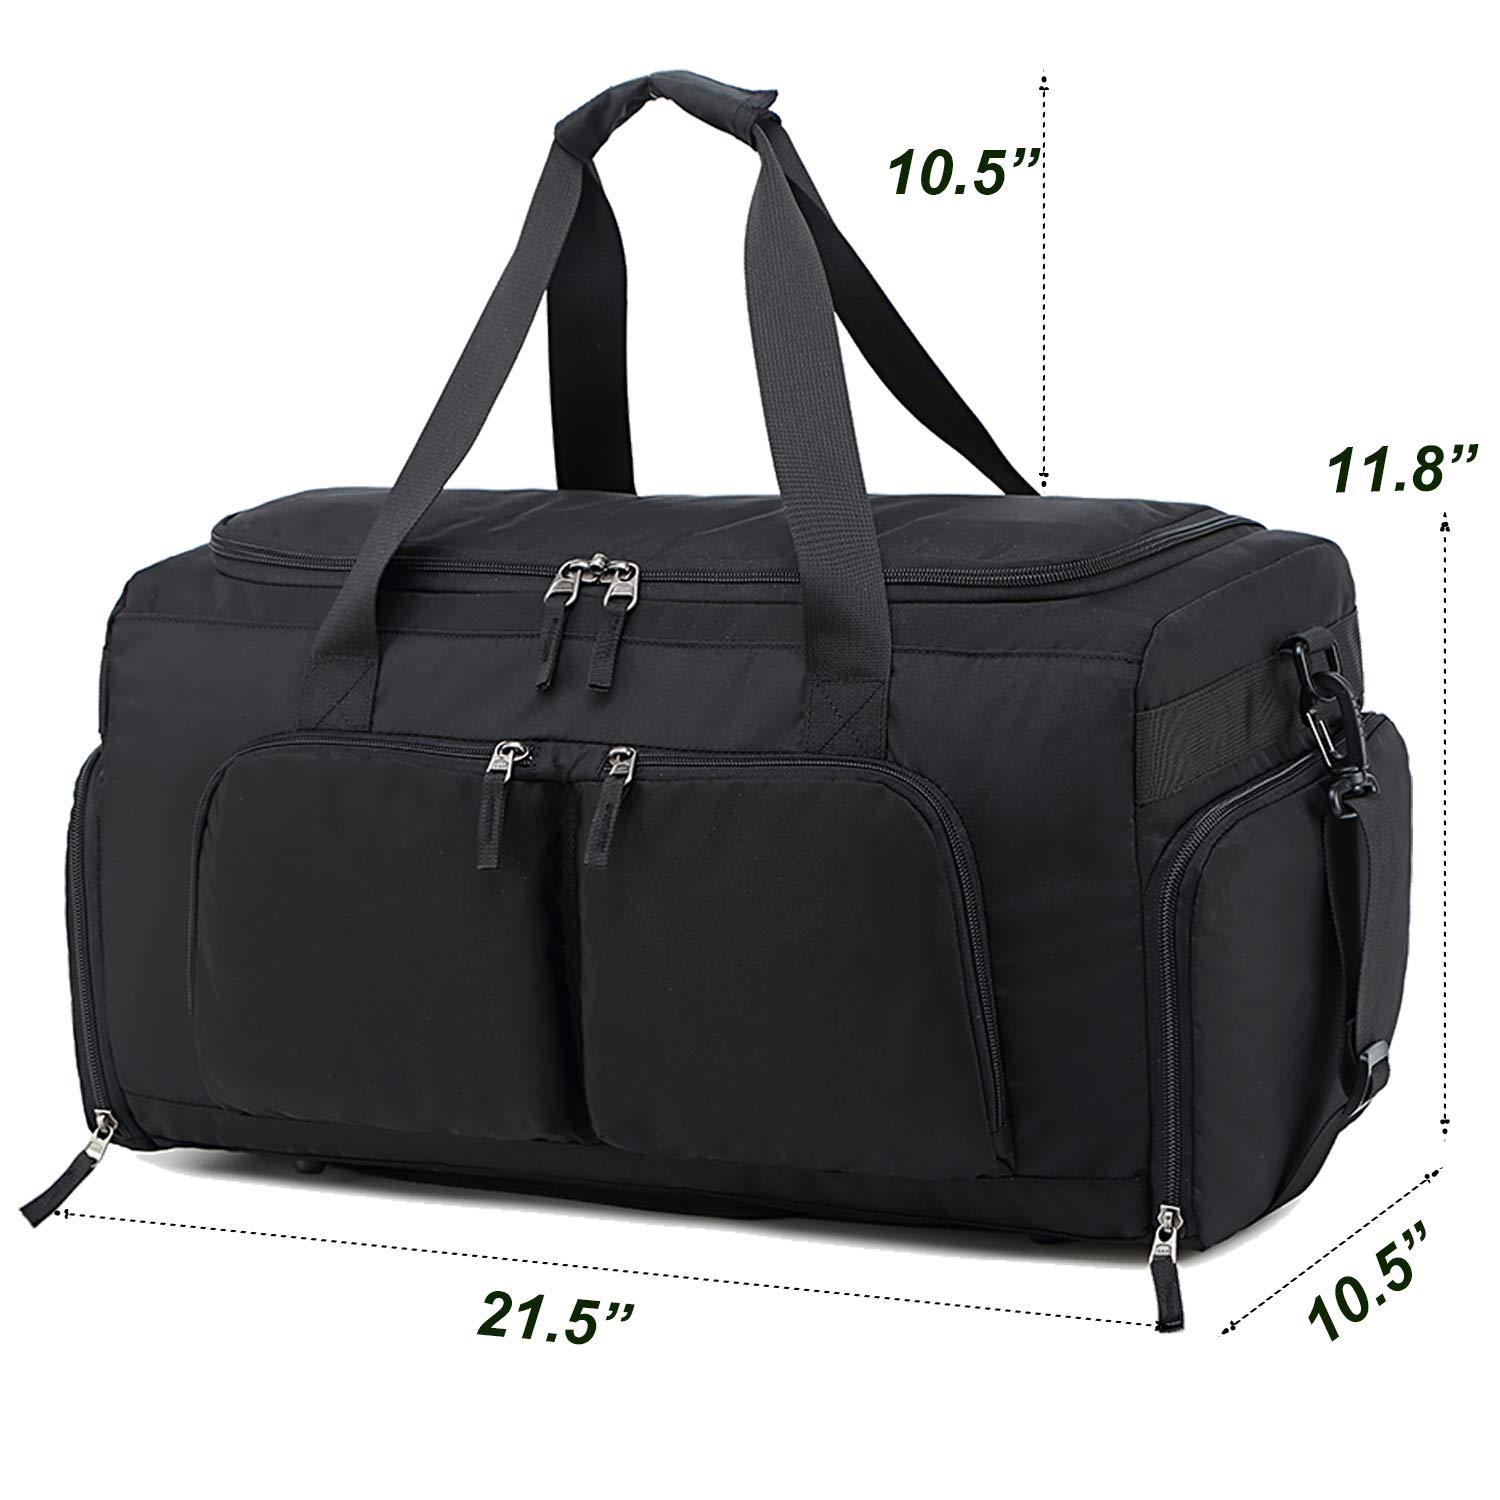 7313387baac0 Amazon.com  Sport Travel Duffel Bag with Shoe Compartment for Men Gym  Weekend Overnight Carry on Tote Bags  UPSTORE